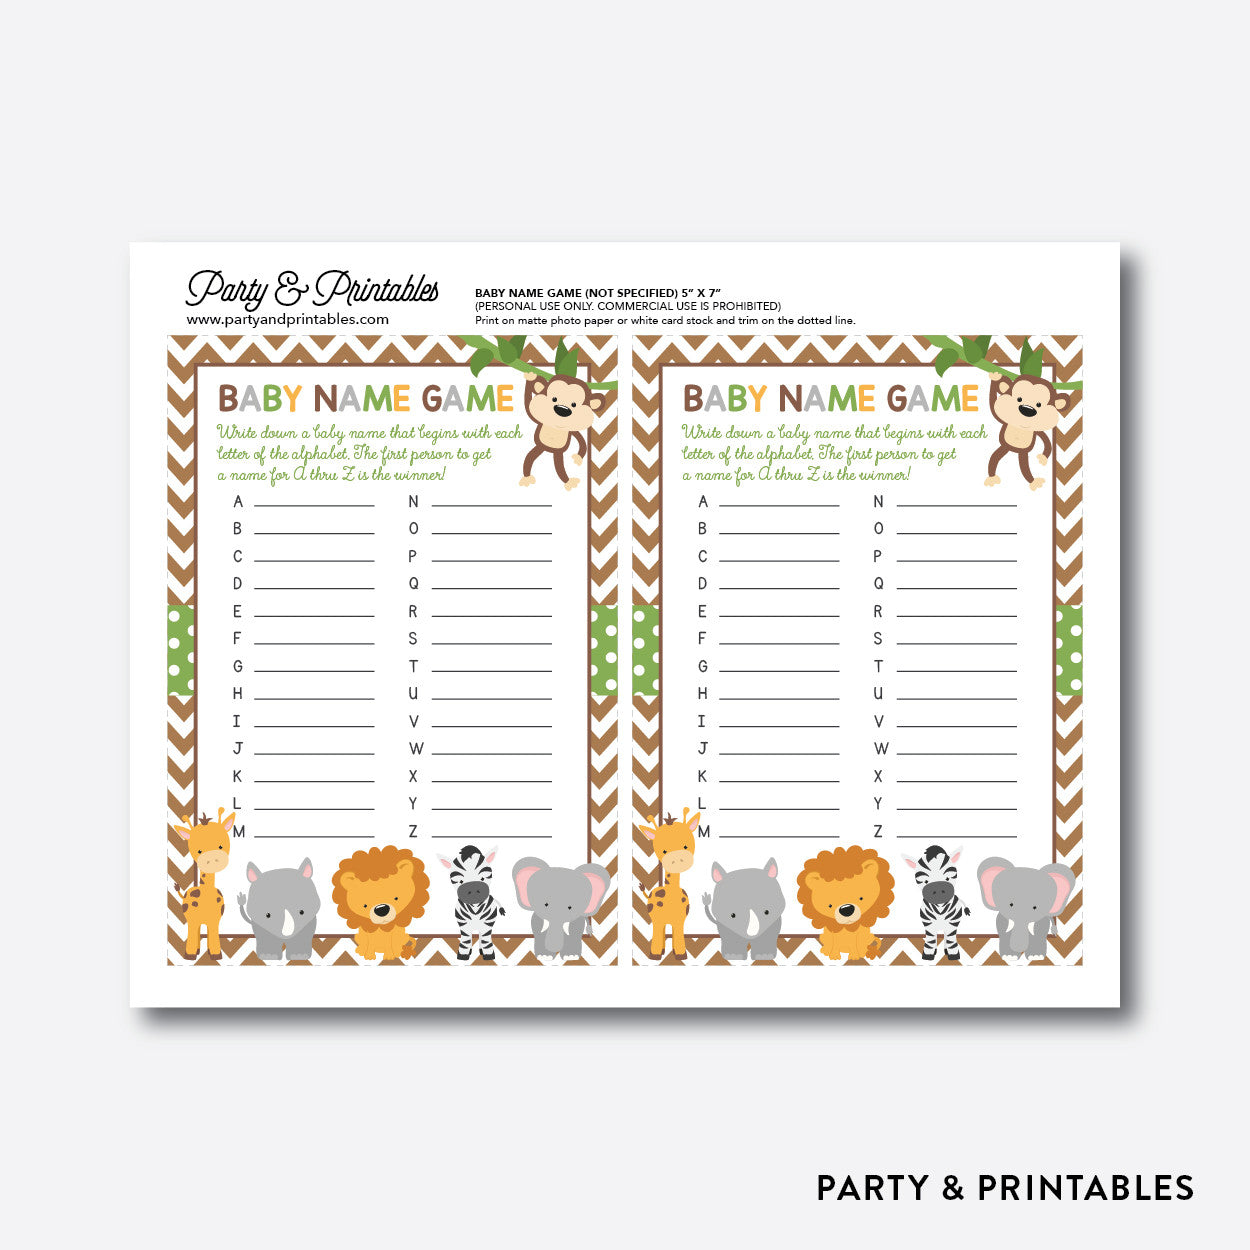 Baby Safari Baby Name Game / Non-Personalized / Instant Download (SBS.31), party printables - Party and Printables